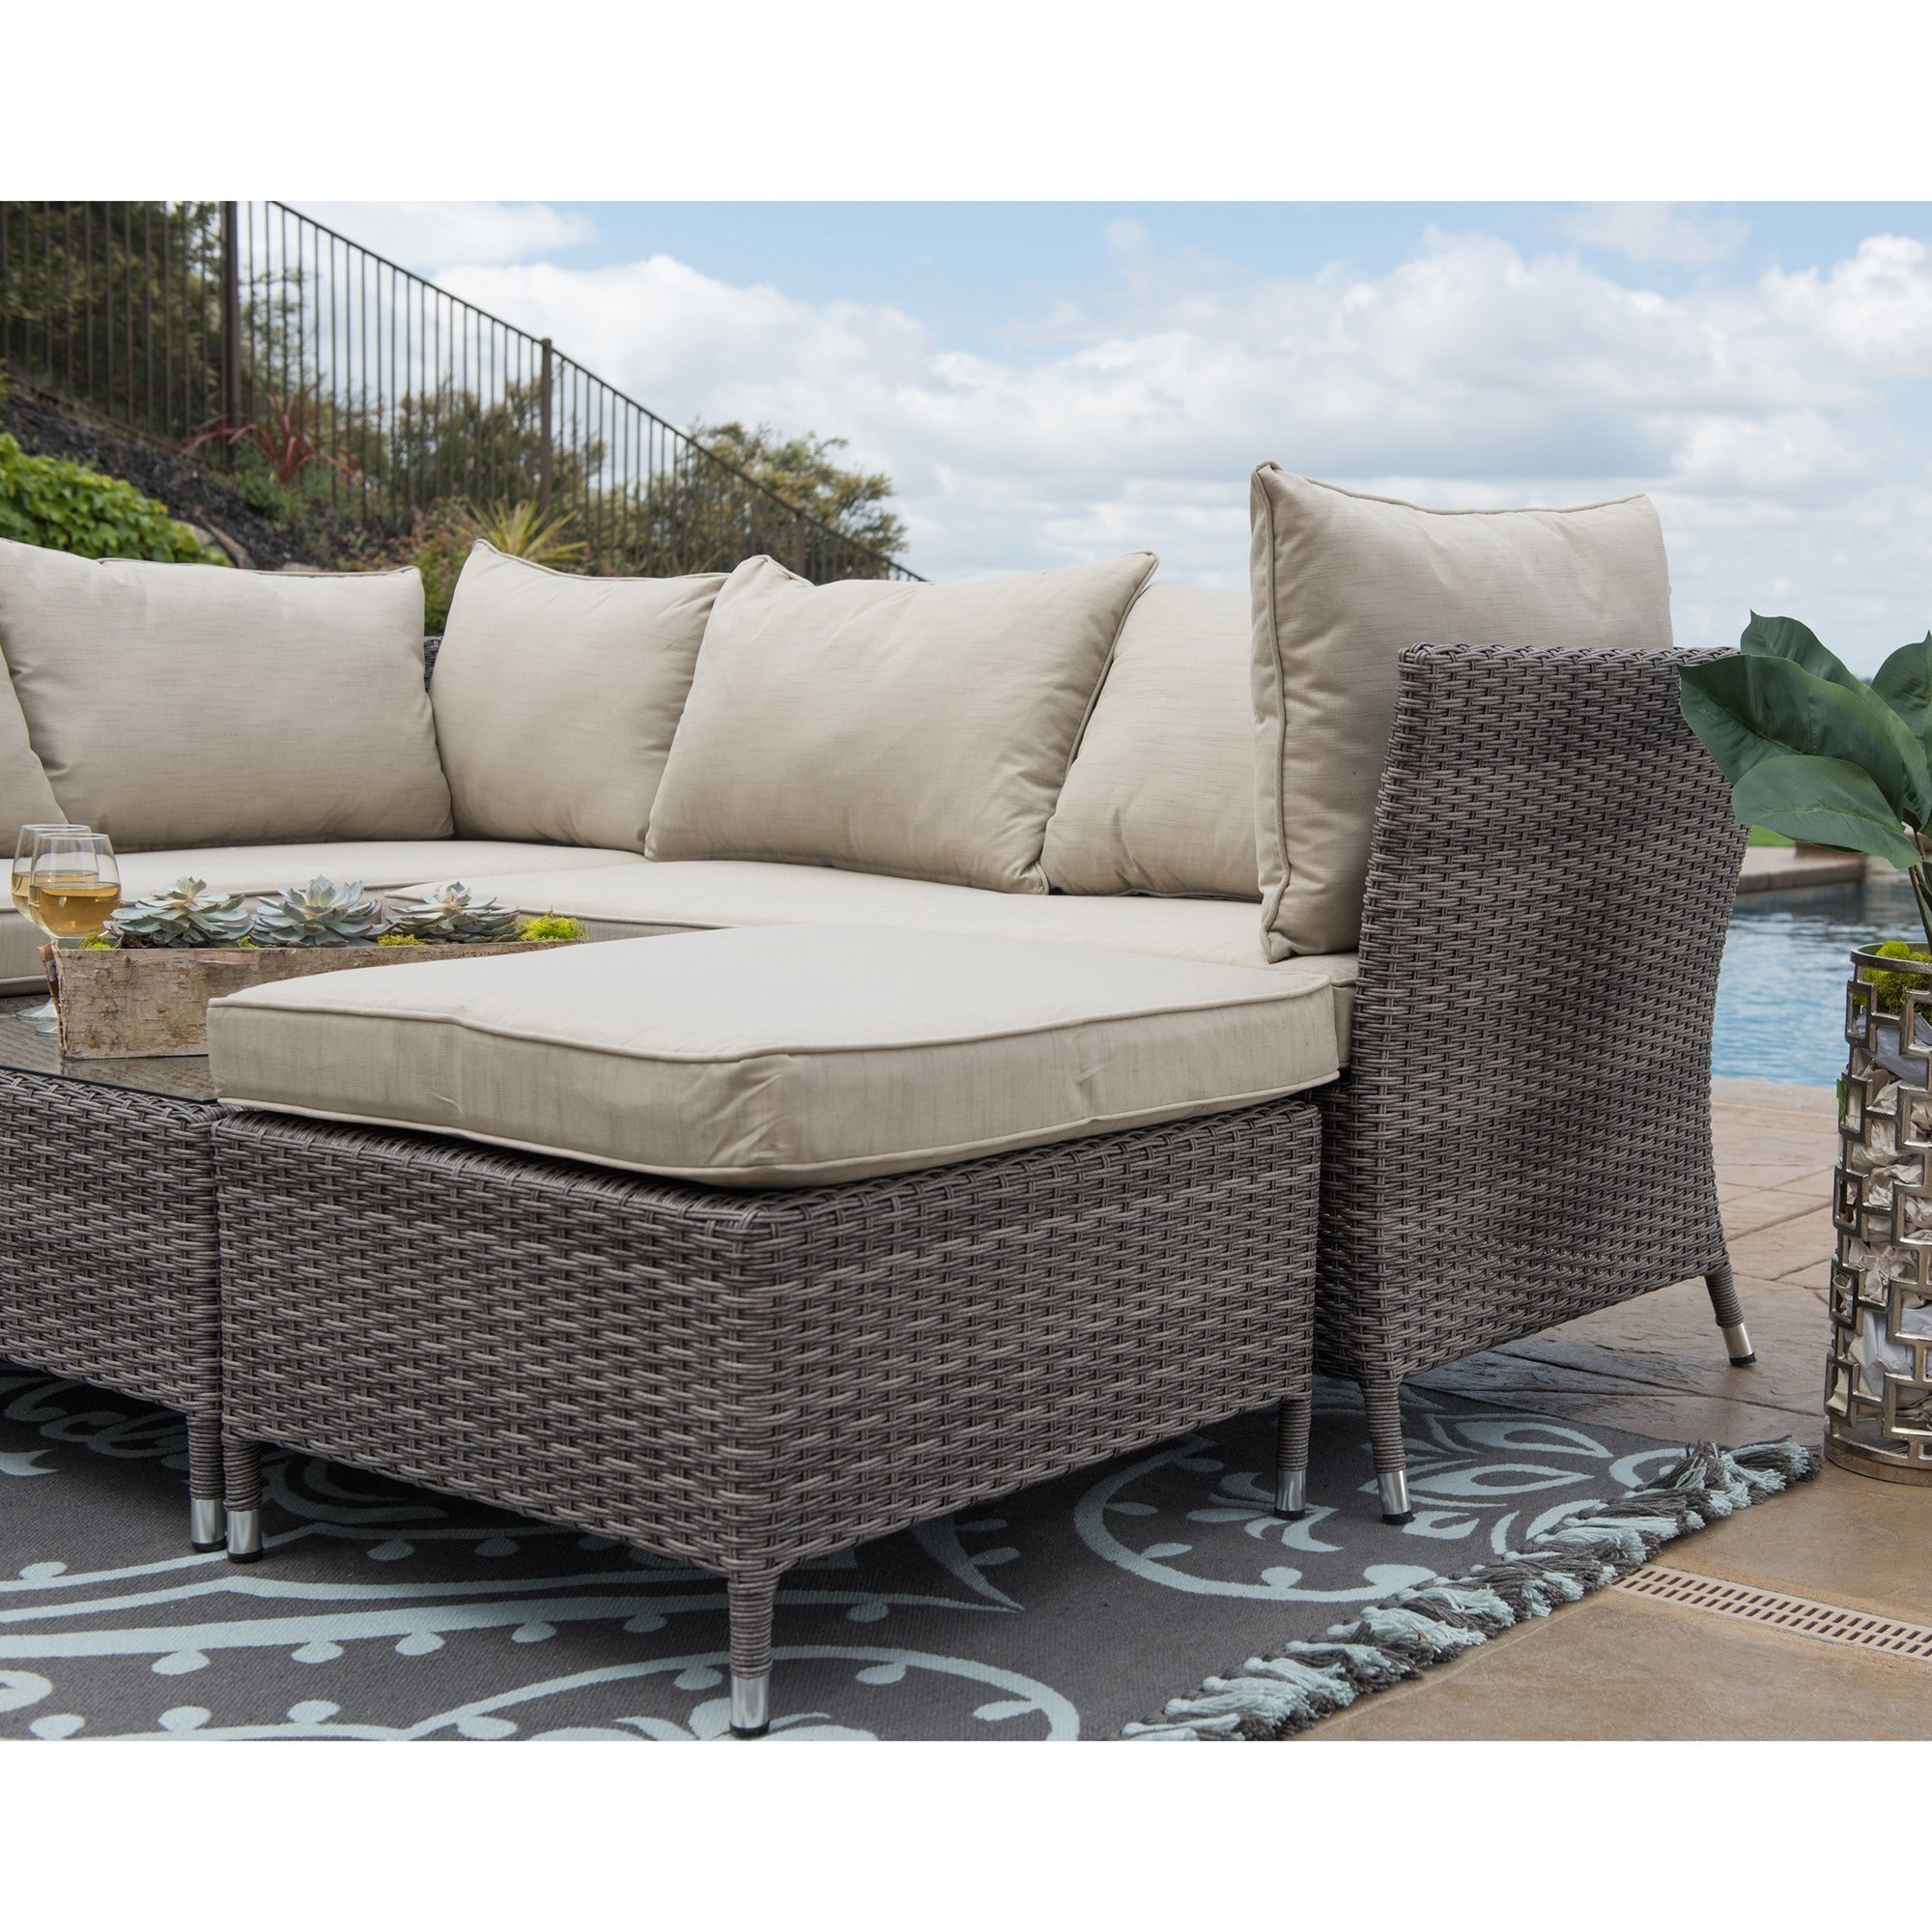 patio furniture fresh inspirational sofa outdoor sets set of wicker affordable breathtaking